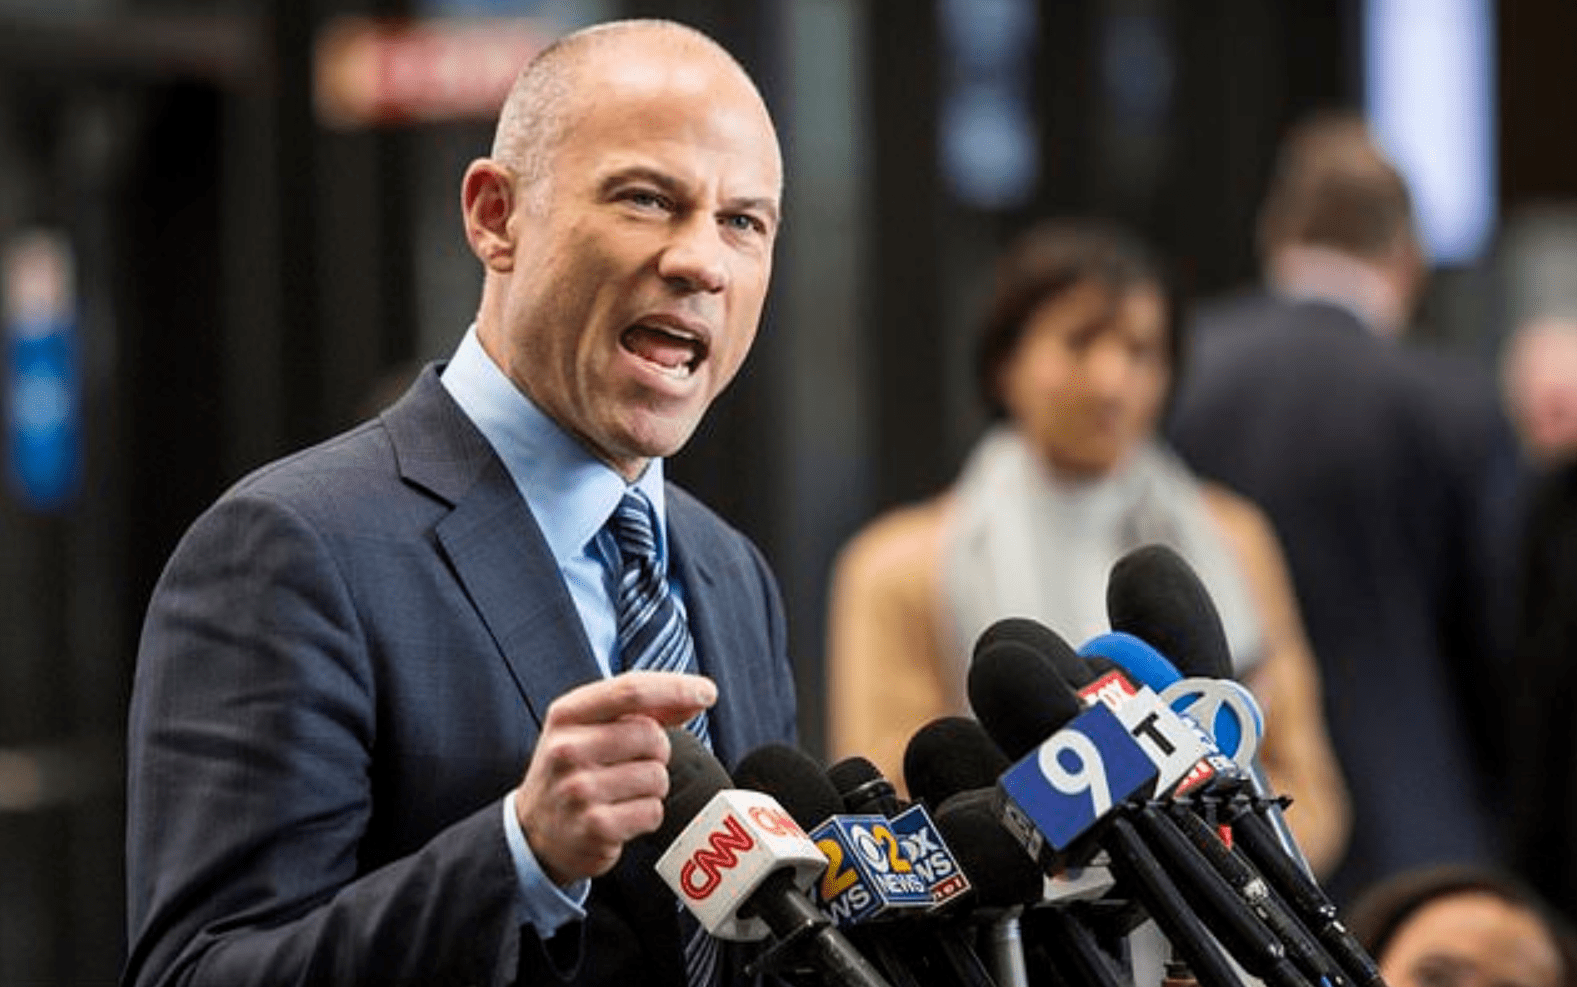 Attorney Michael Avenatti Arrested; Charged With Financial Crimes by Federal Law Enforcement Officials